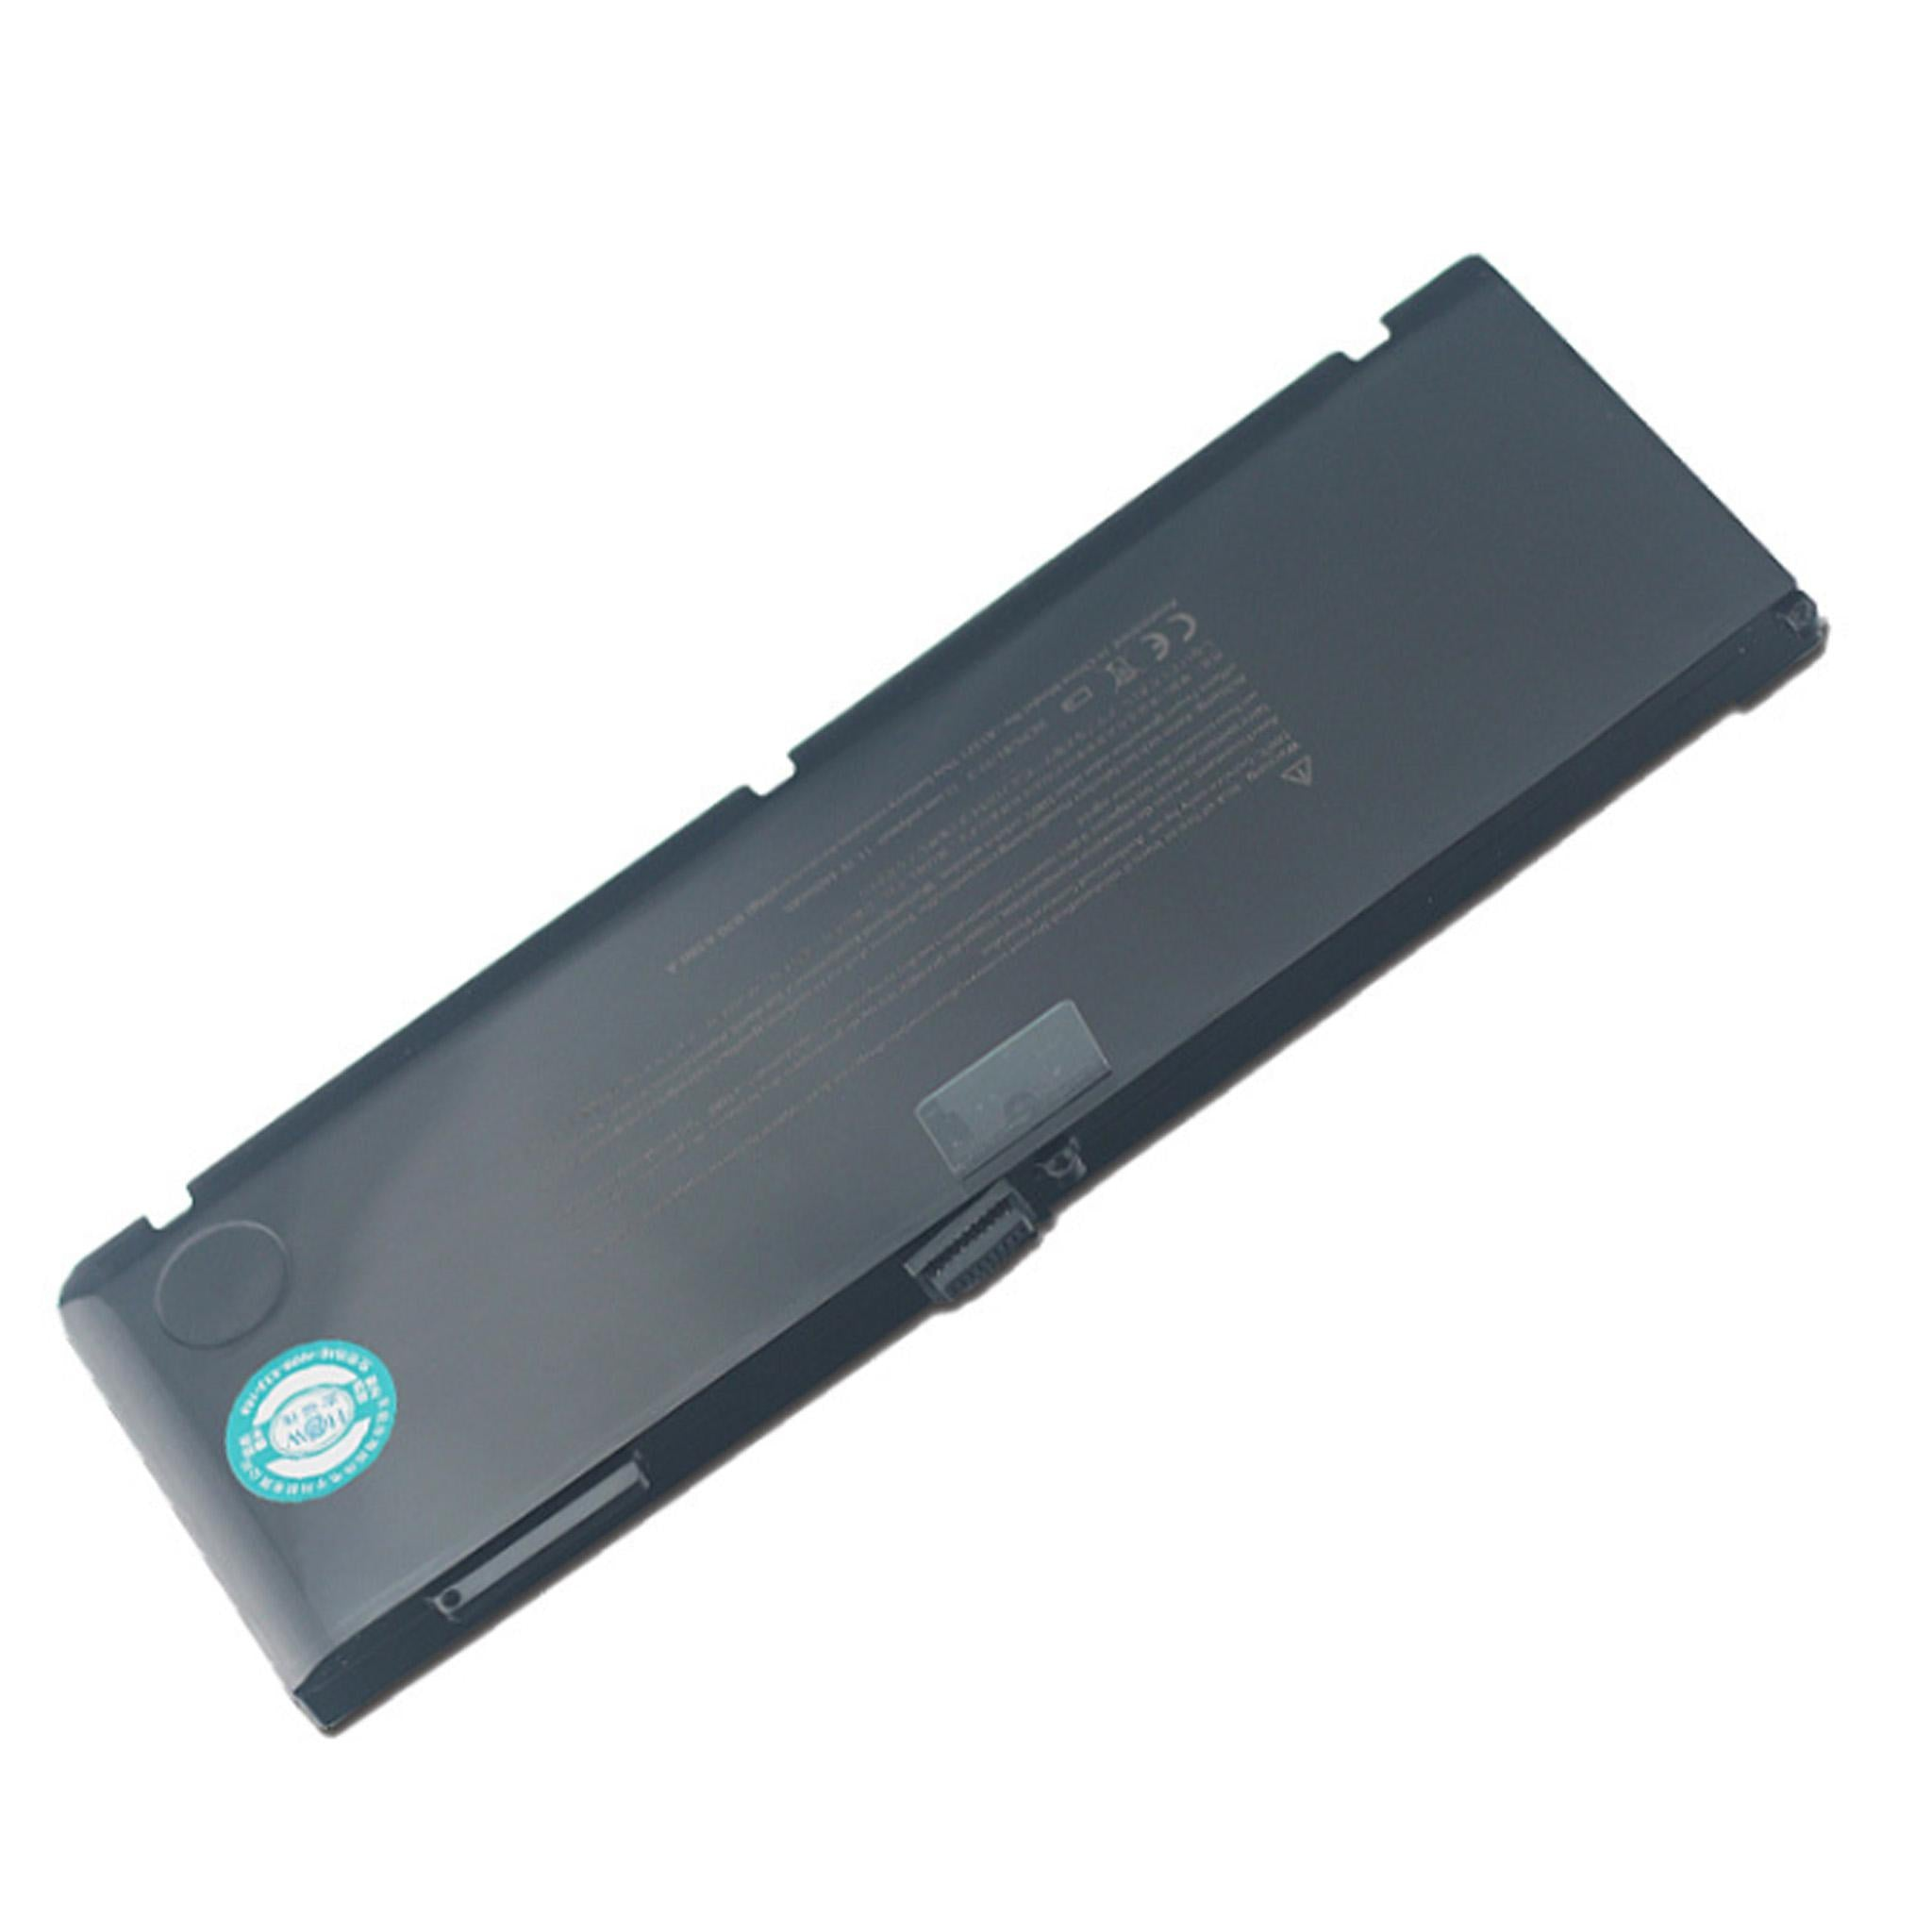 MacBook Pro 15 inch Unibody Battery A1321